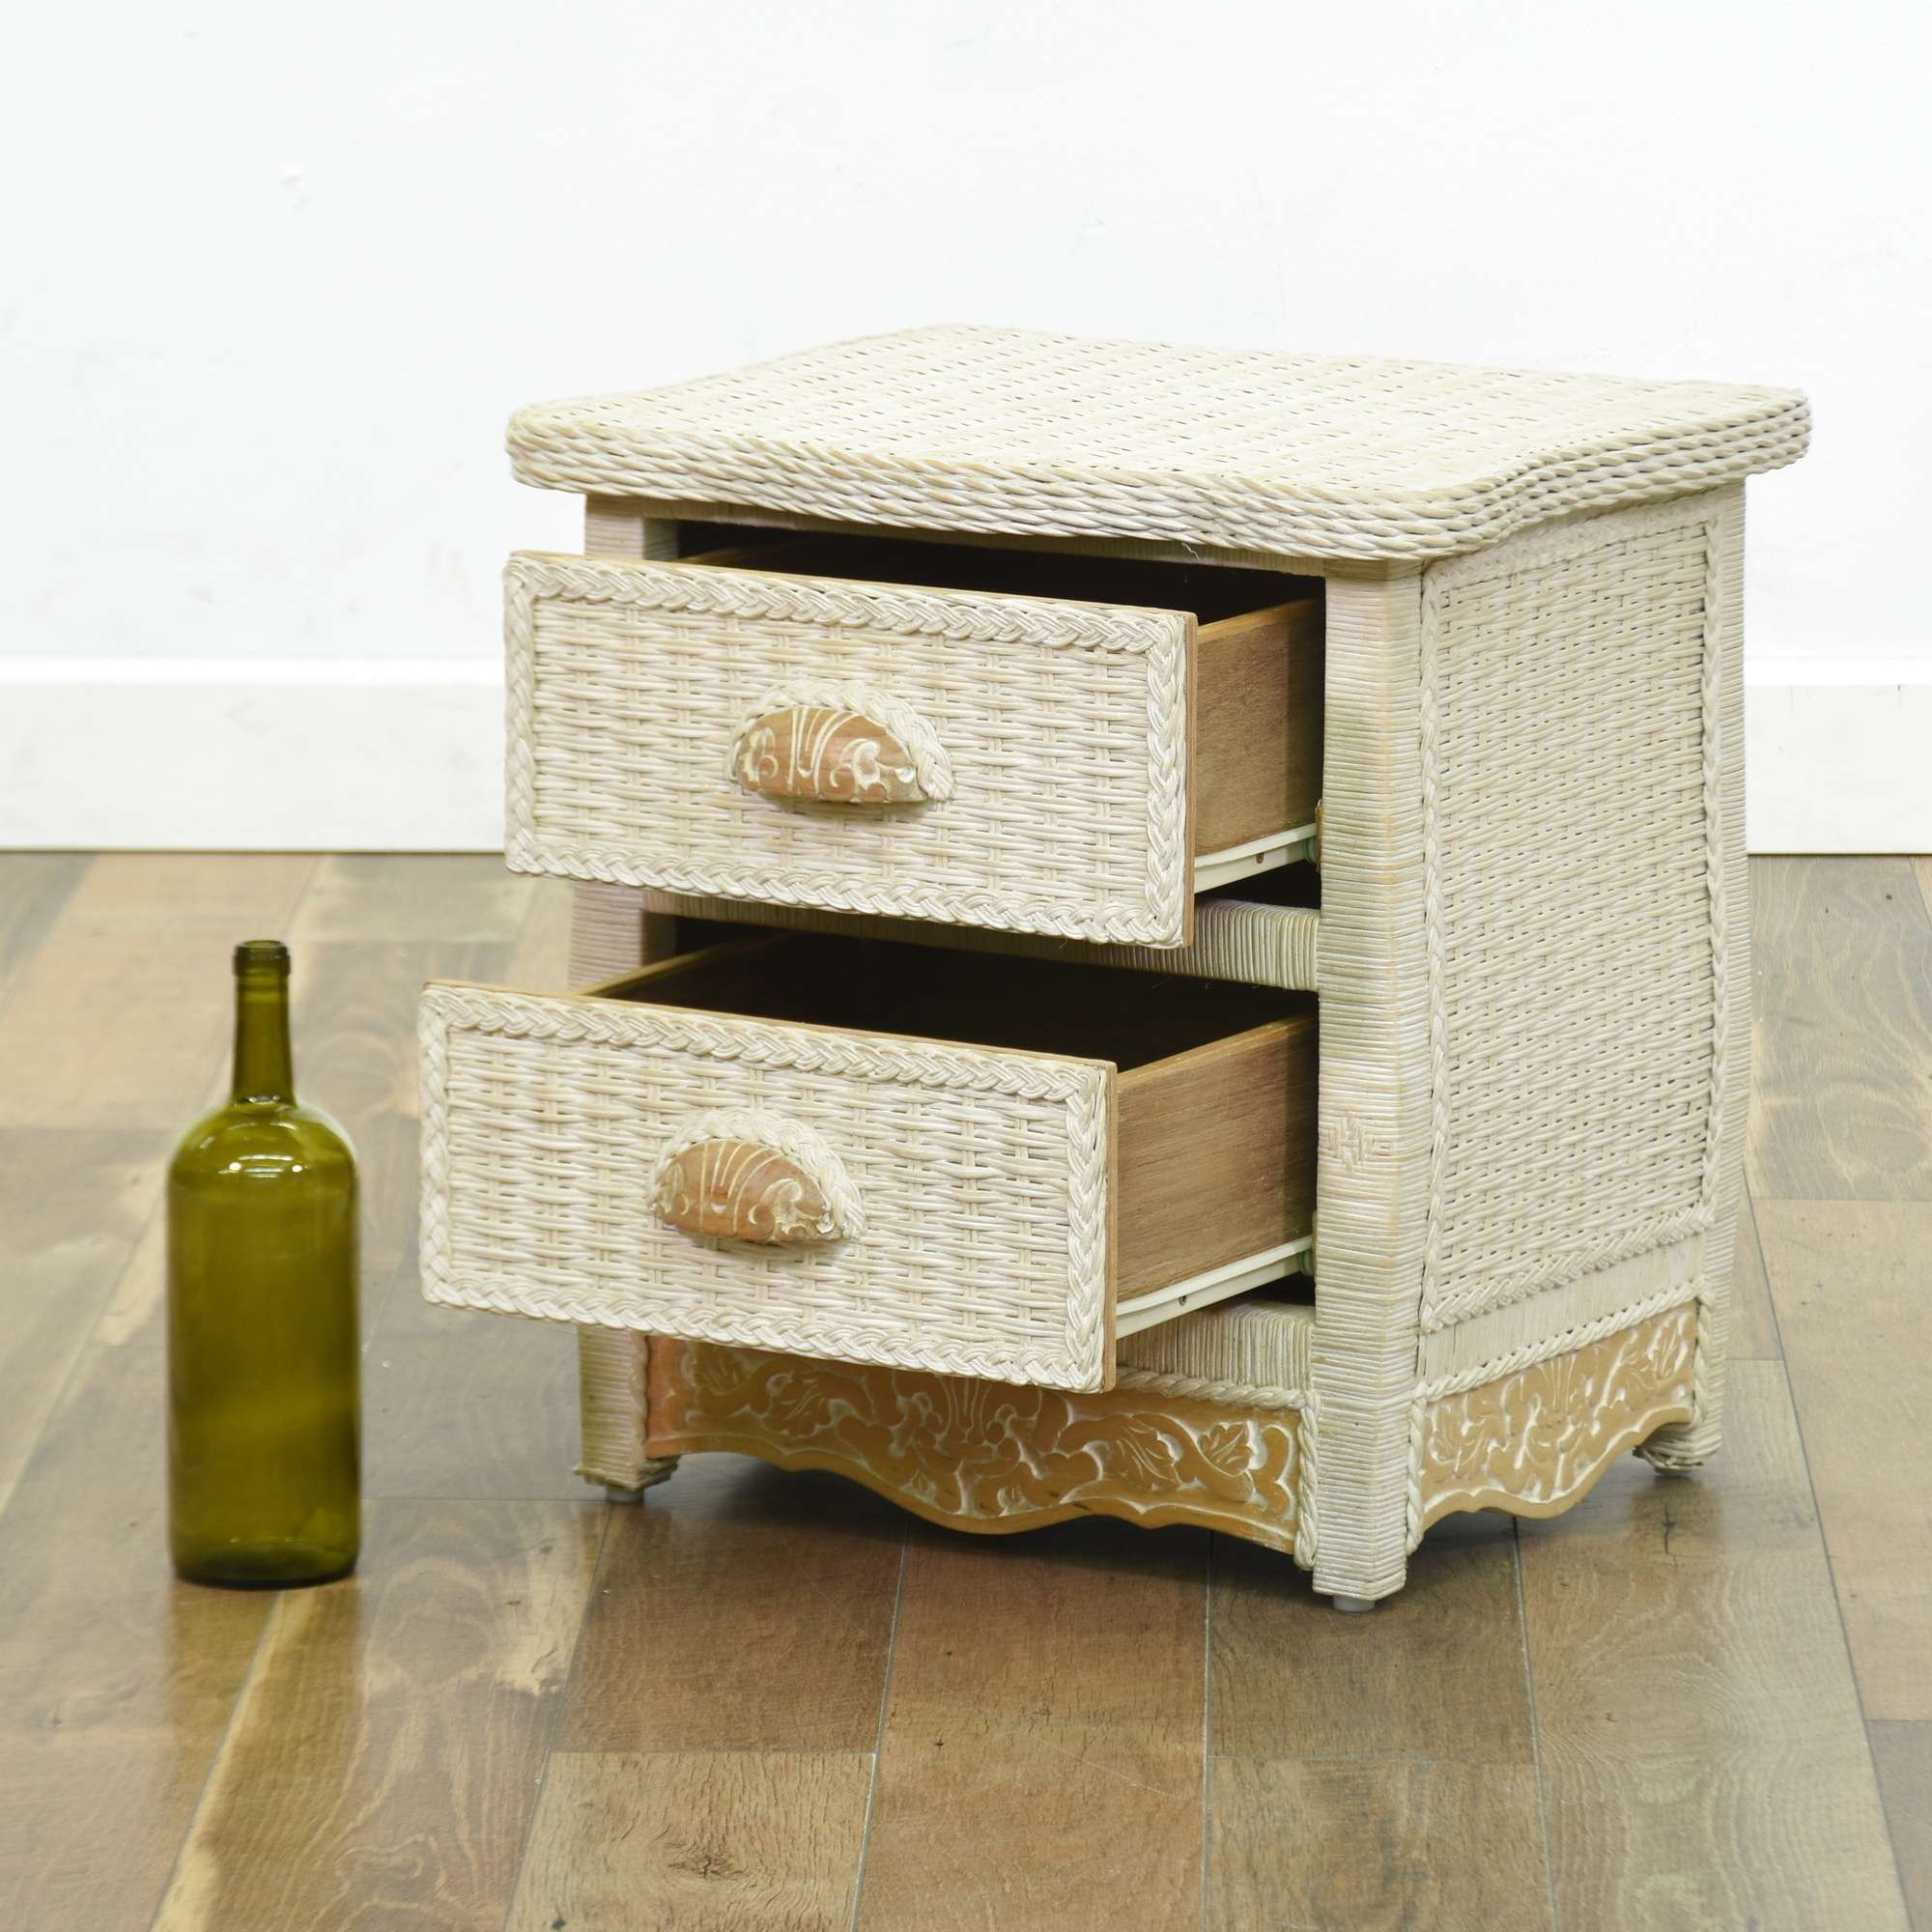 Pier 1 Imports Jamaica Collection Wicker Nightstand ...